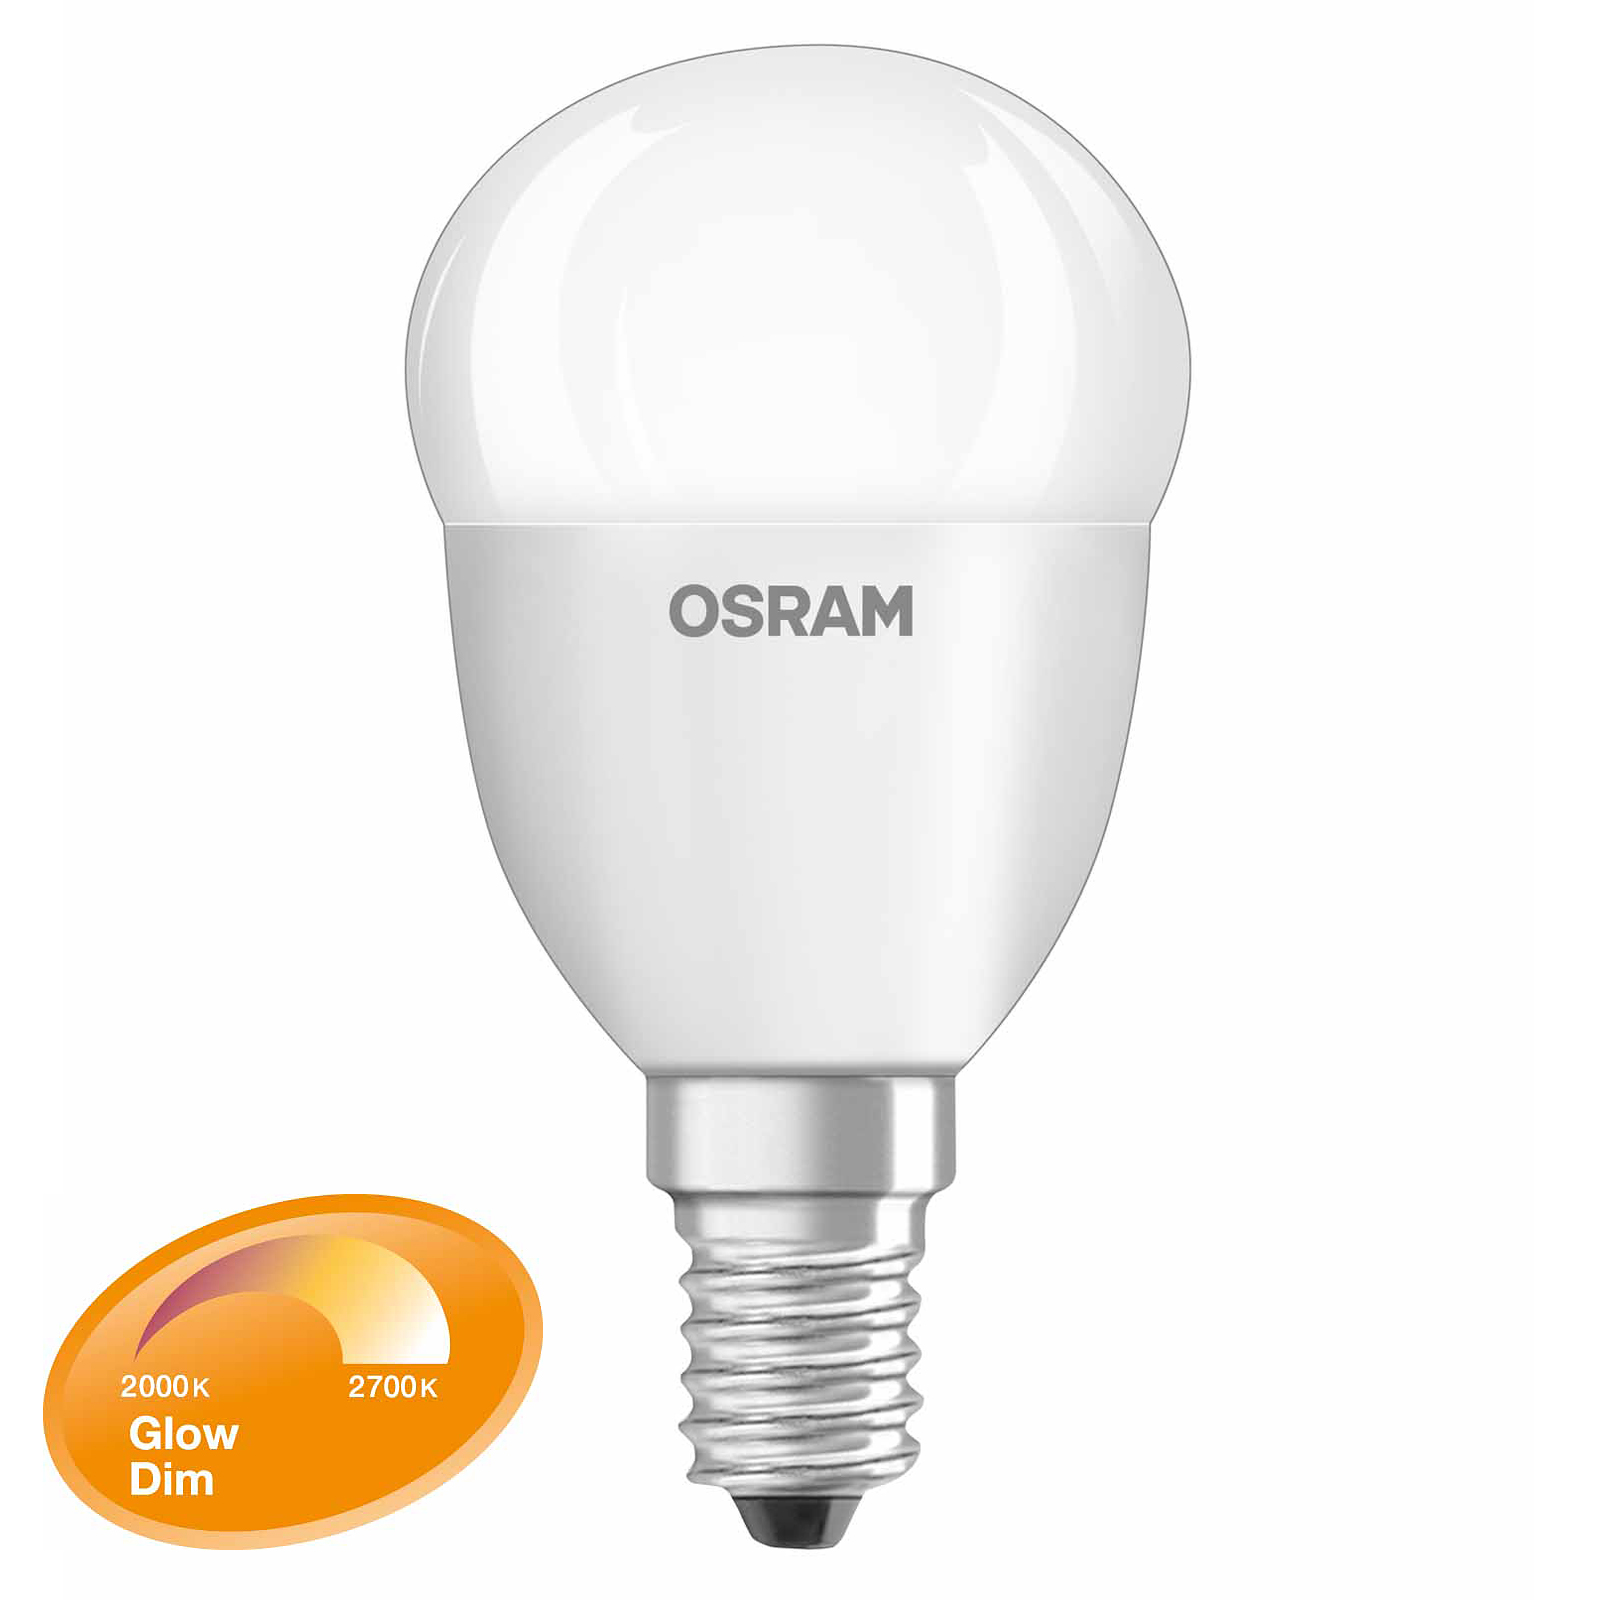 osram led classic p glow dim e14 6 5w wie 40 watt 470 lm warmwei dimmbar ebay. Black Bedroom Furniture Sets. Home Design Ideas